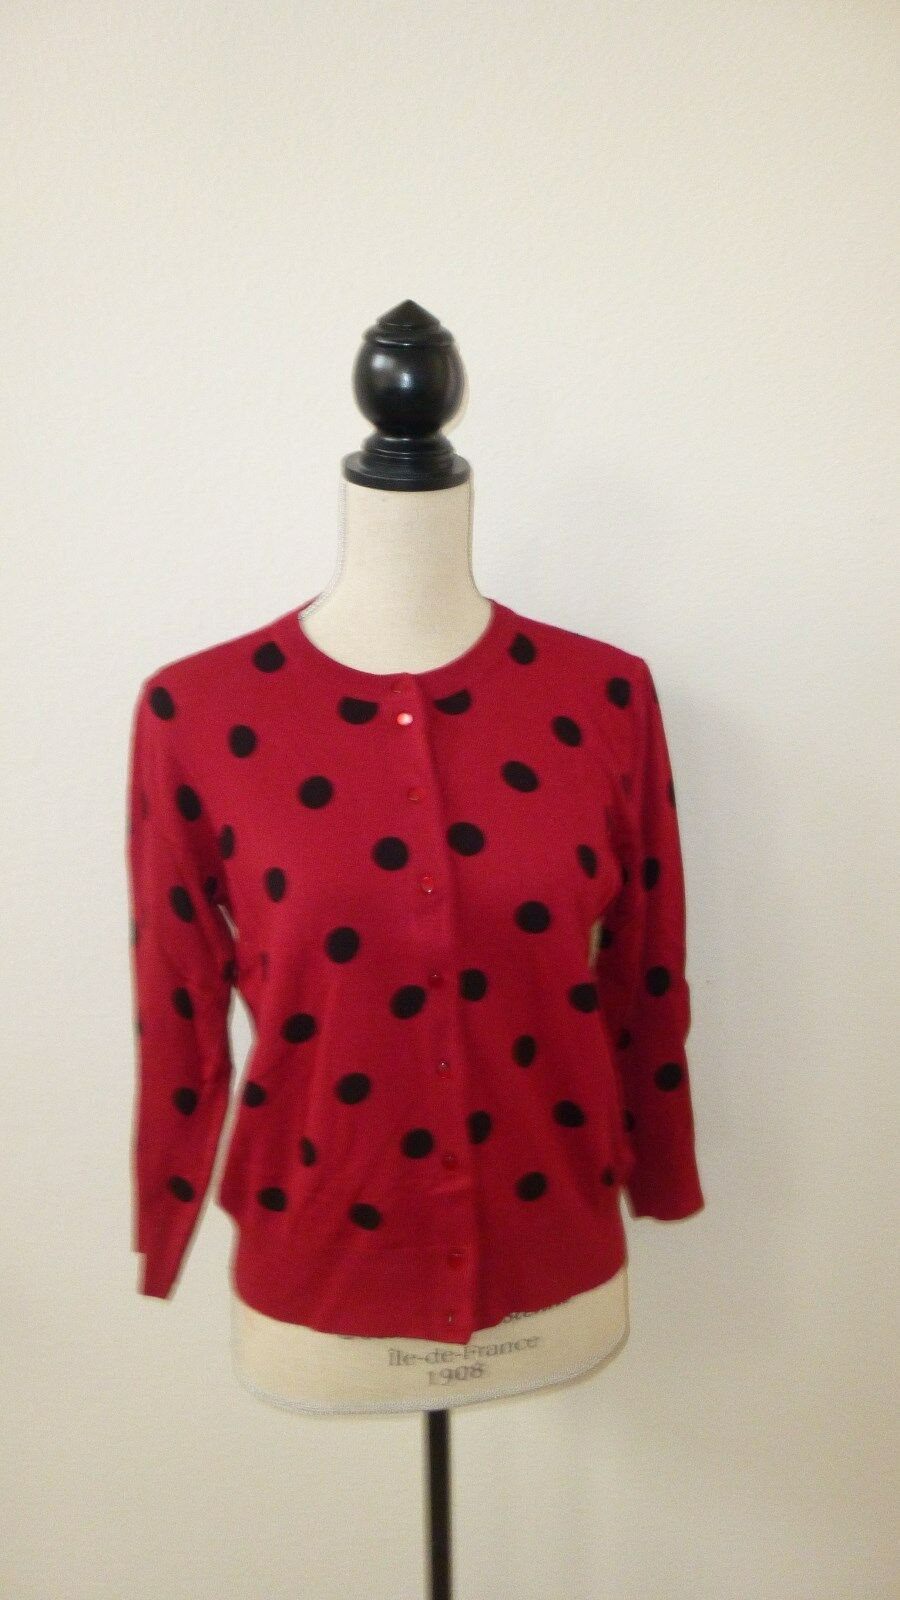 Size large red polka dot button down cardigan